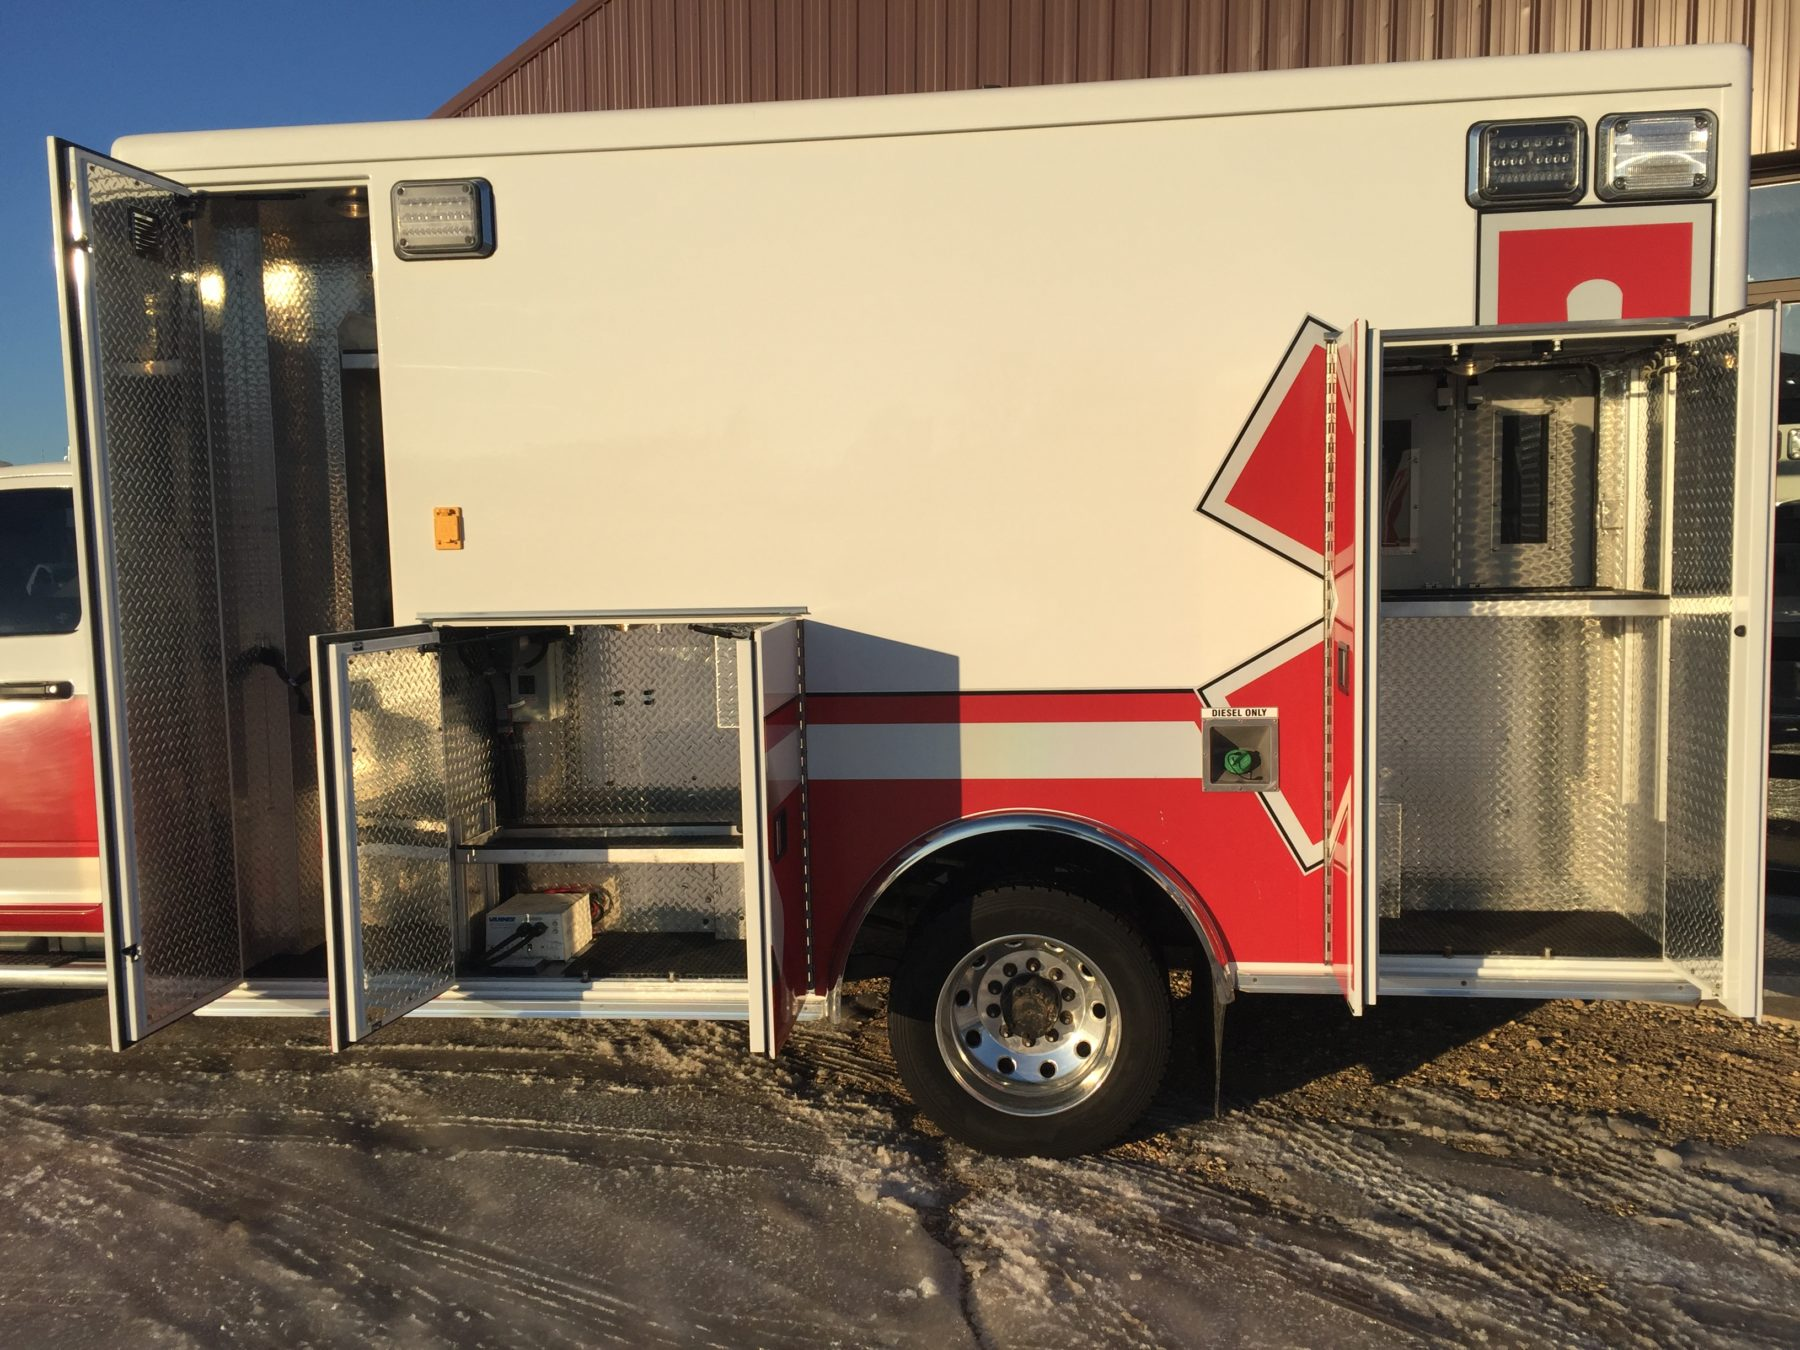 2015 Dodge 4500 4x4 Heavy Duty Ambulance For Sale – Picture 6